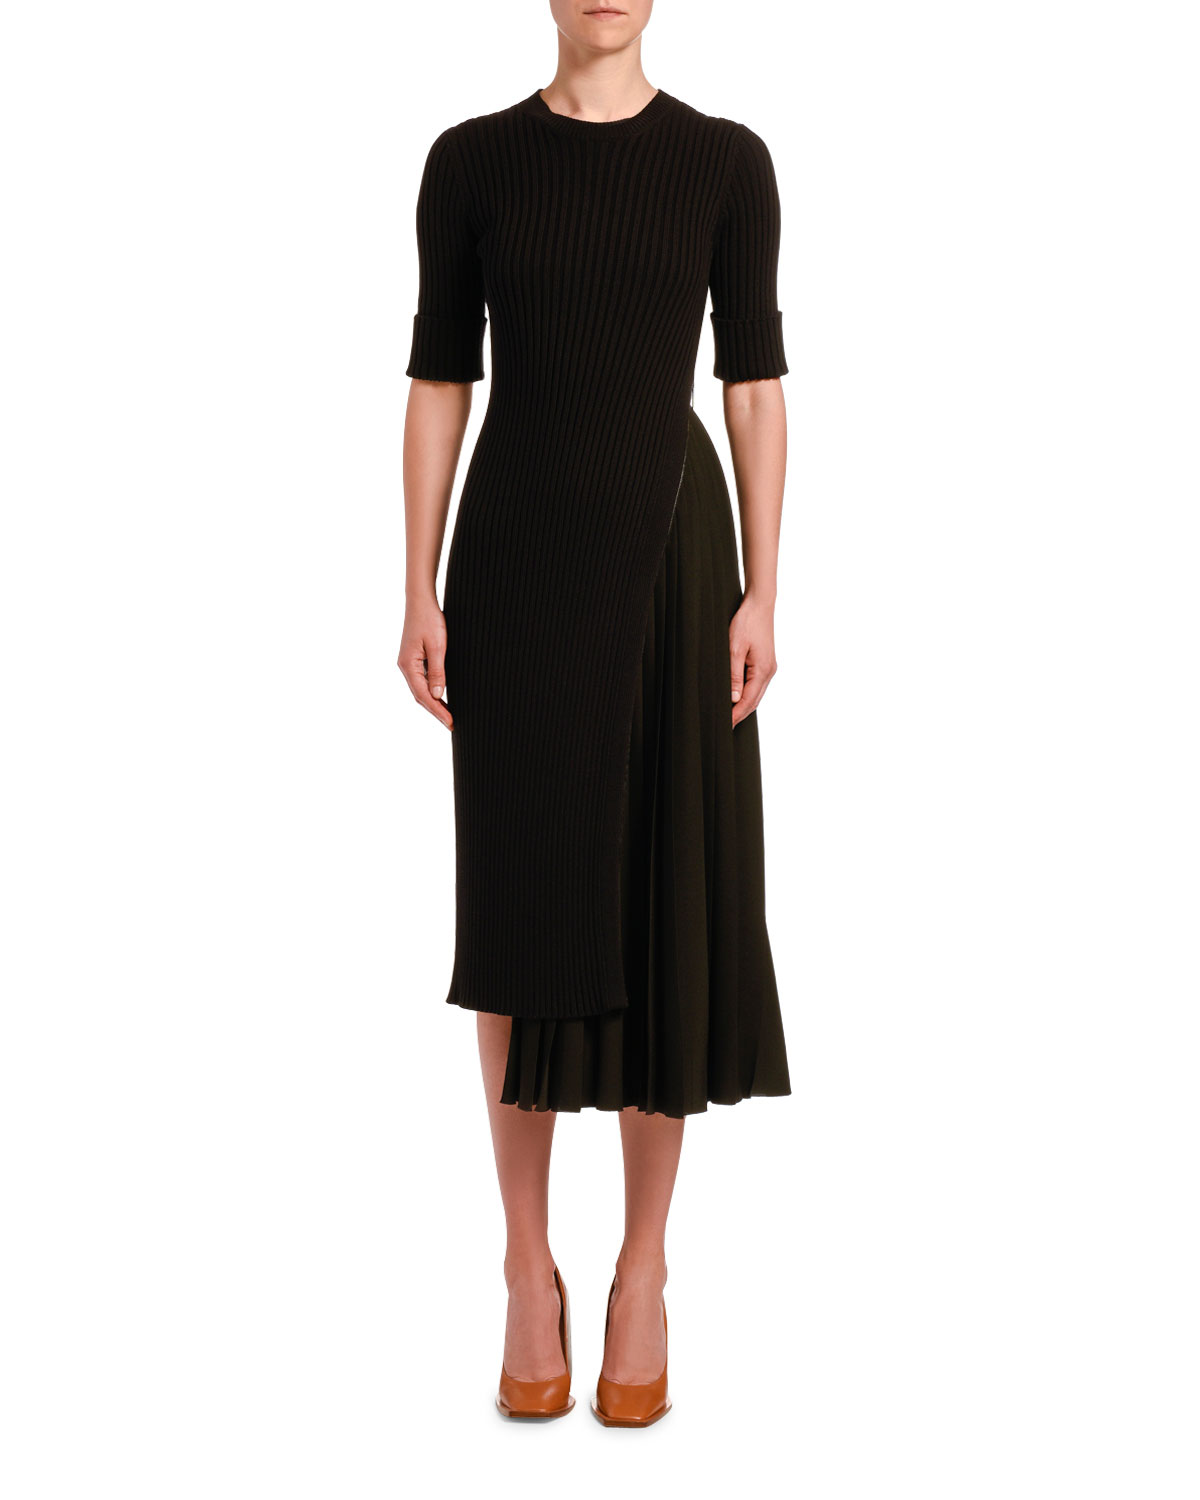 N°21 Dresses ASYMMETRICAL KNIT COCKTAIL DRESS